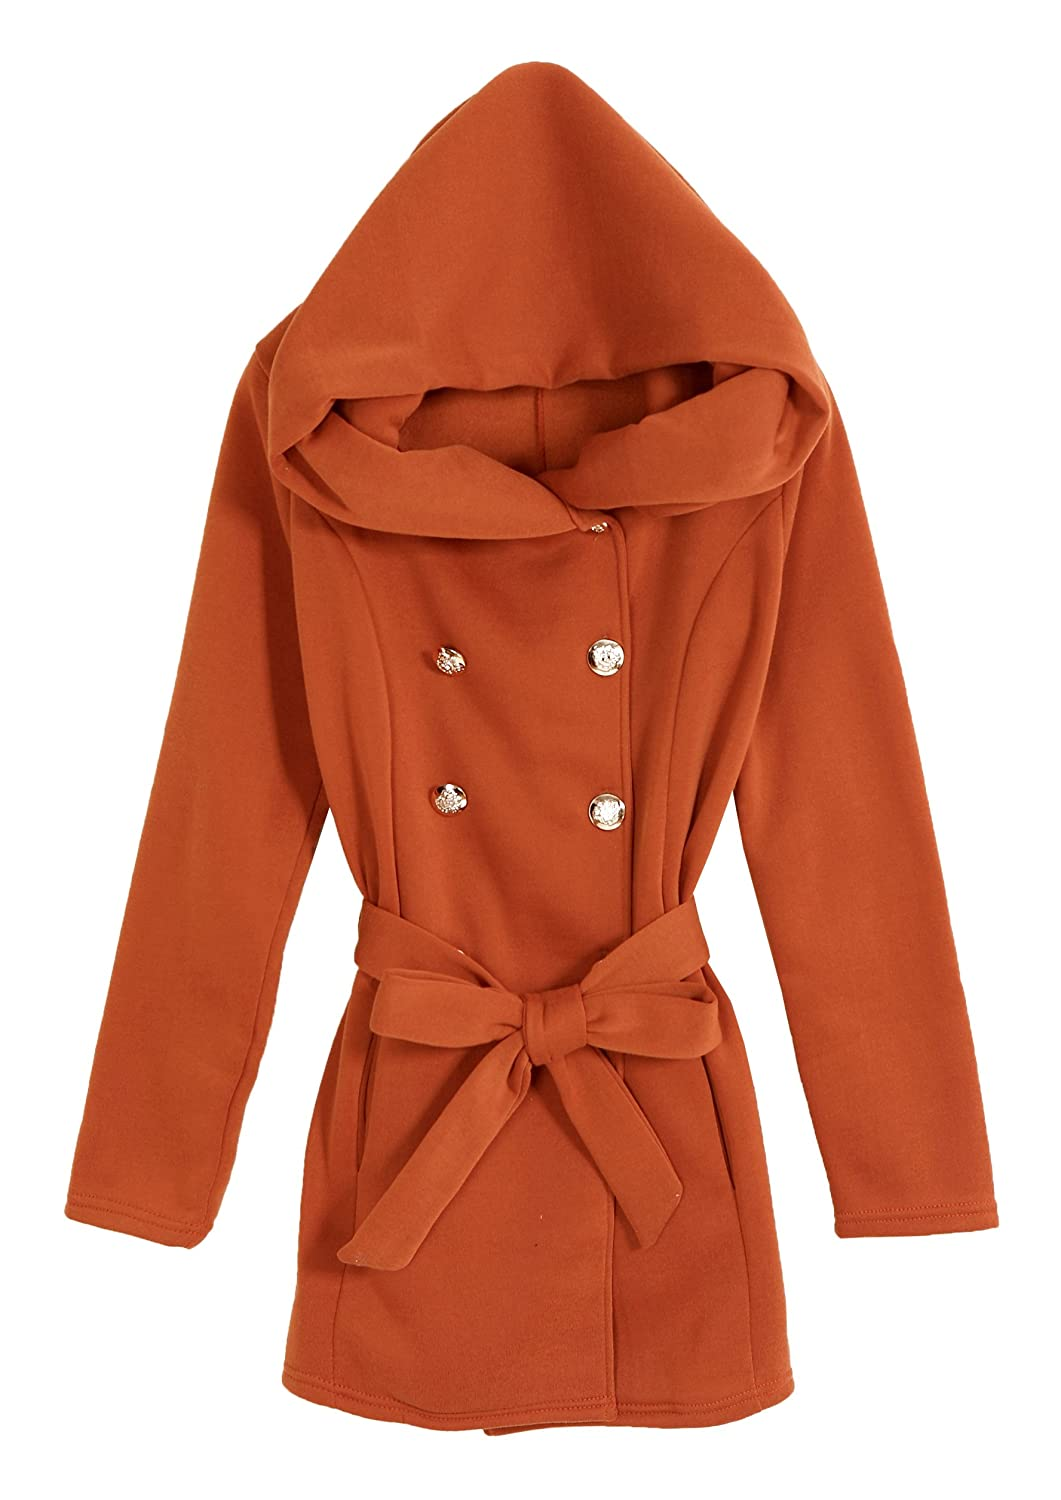 TOKYO FASHION Women's Hooded Buckled Cardigan Cotton Coat